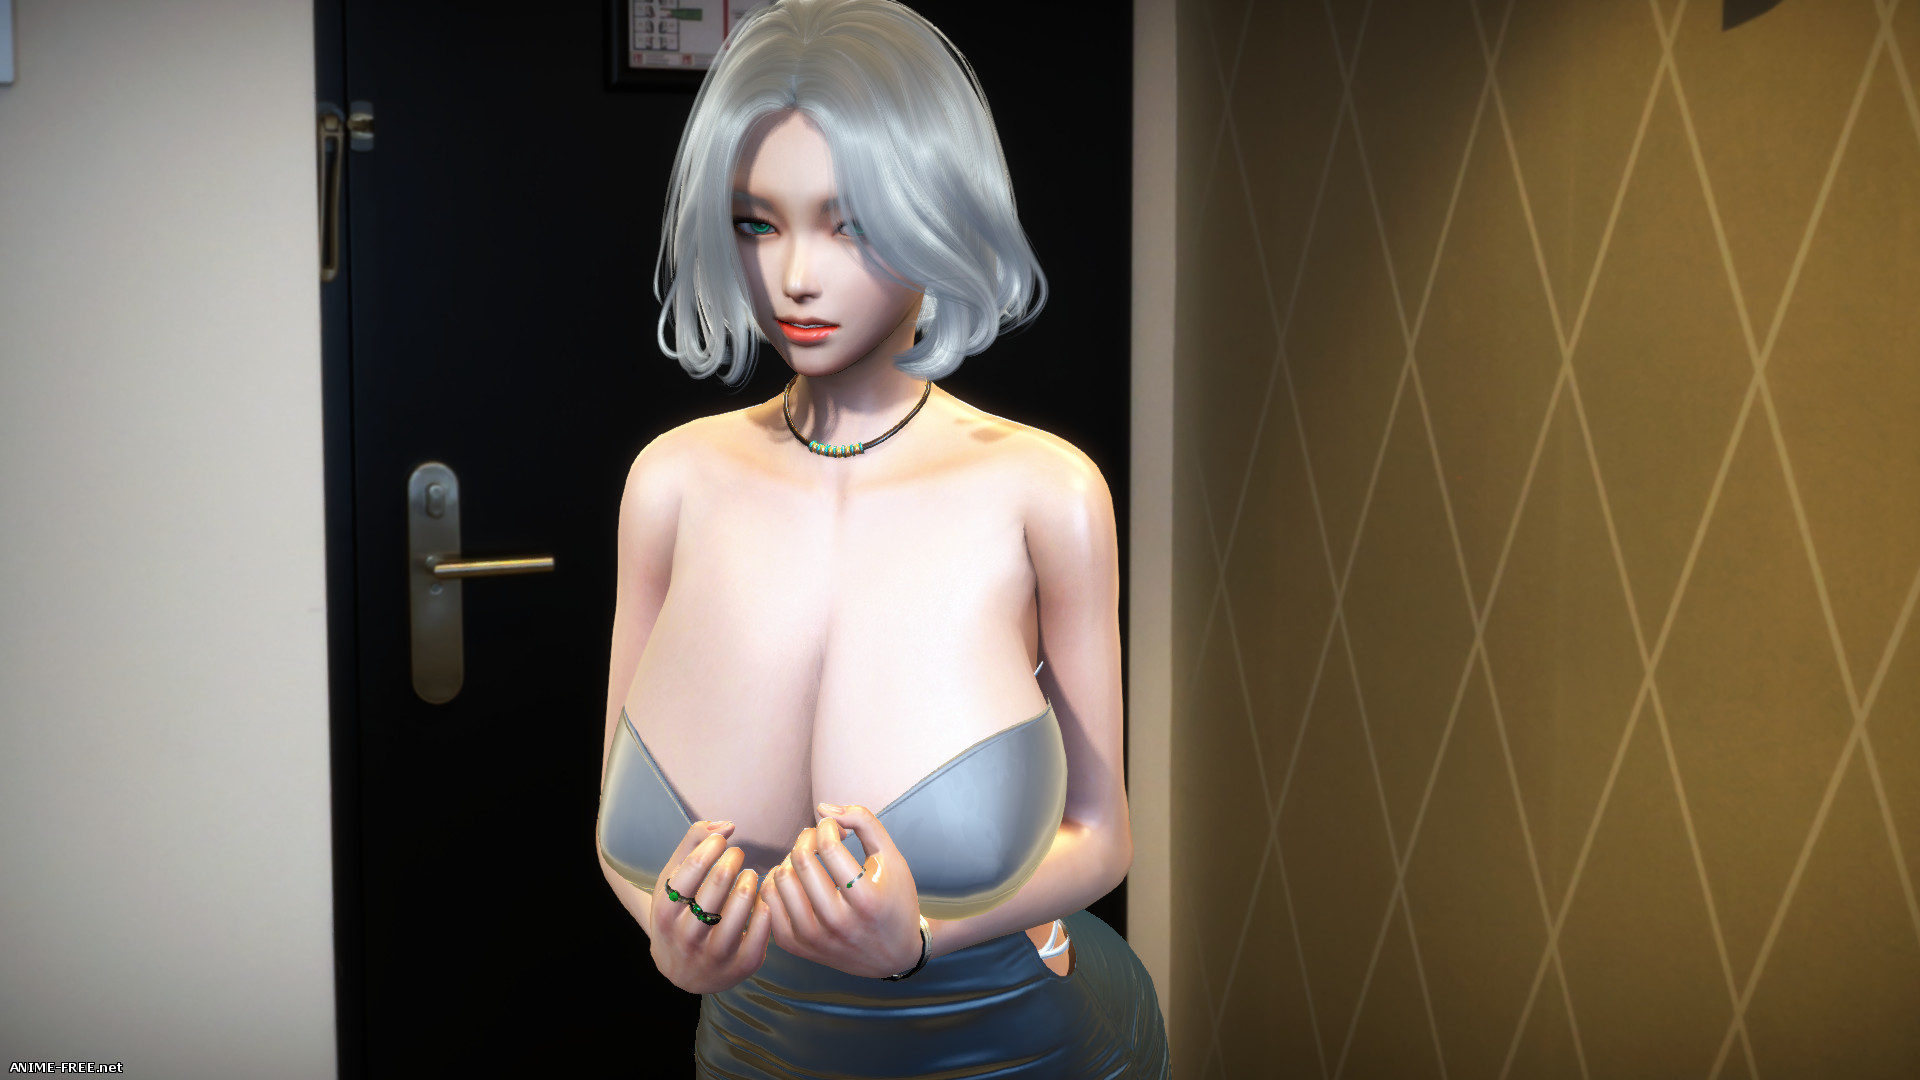 V.I.R.T.U.E.S [2019] [Uncen] [ADV, 3DCG] [Android Compatible] [ENG] H-Game